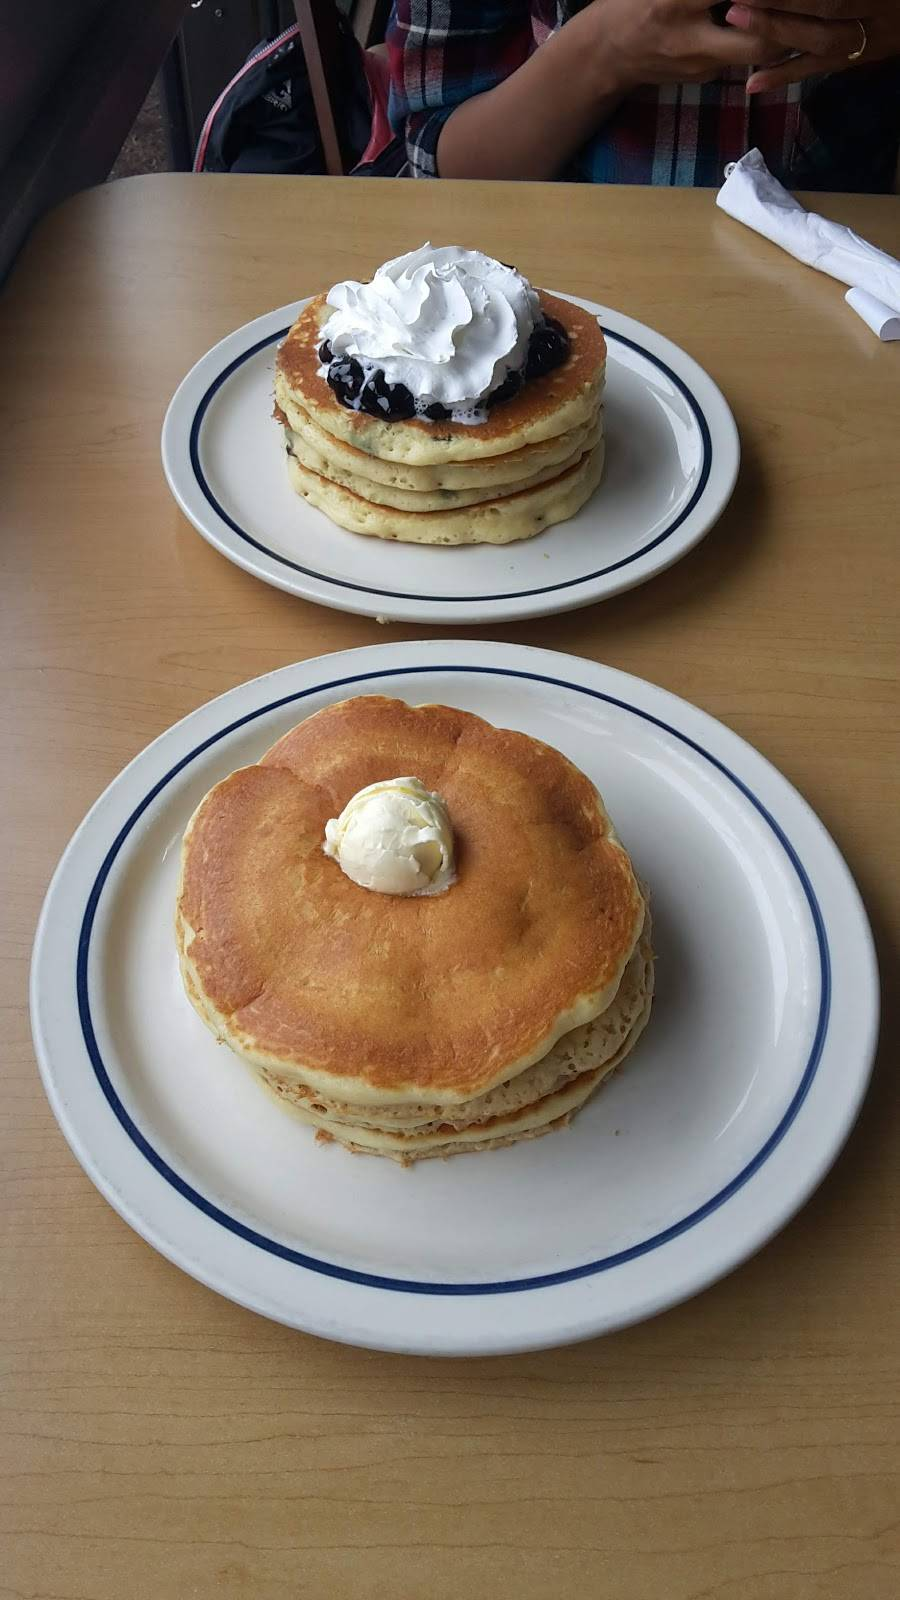 IHOP | bakery | 51 McHenry Rd, Buffalo Grove, IL 60089, USA | 8475378631 OR +1 847-537-8631